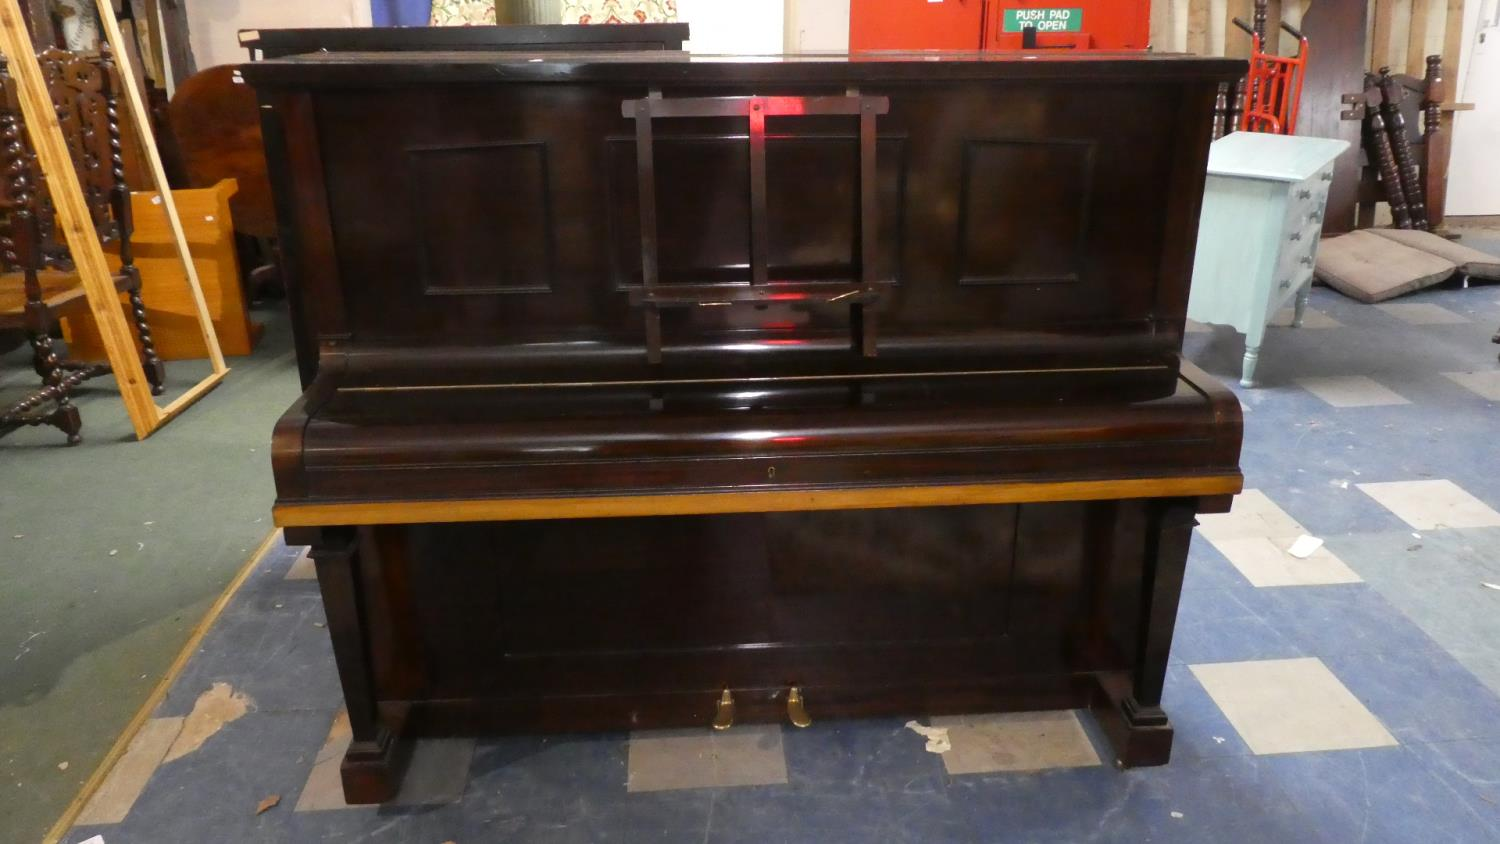 Lot 388 - An Edwardian Mahogany Cased Upright Iron Framed Piano, George Ward Retailed by Murdoch & co.